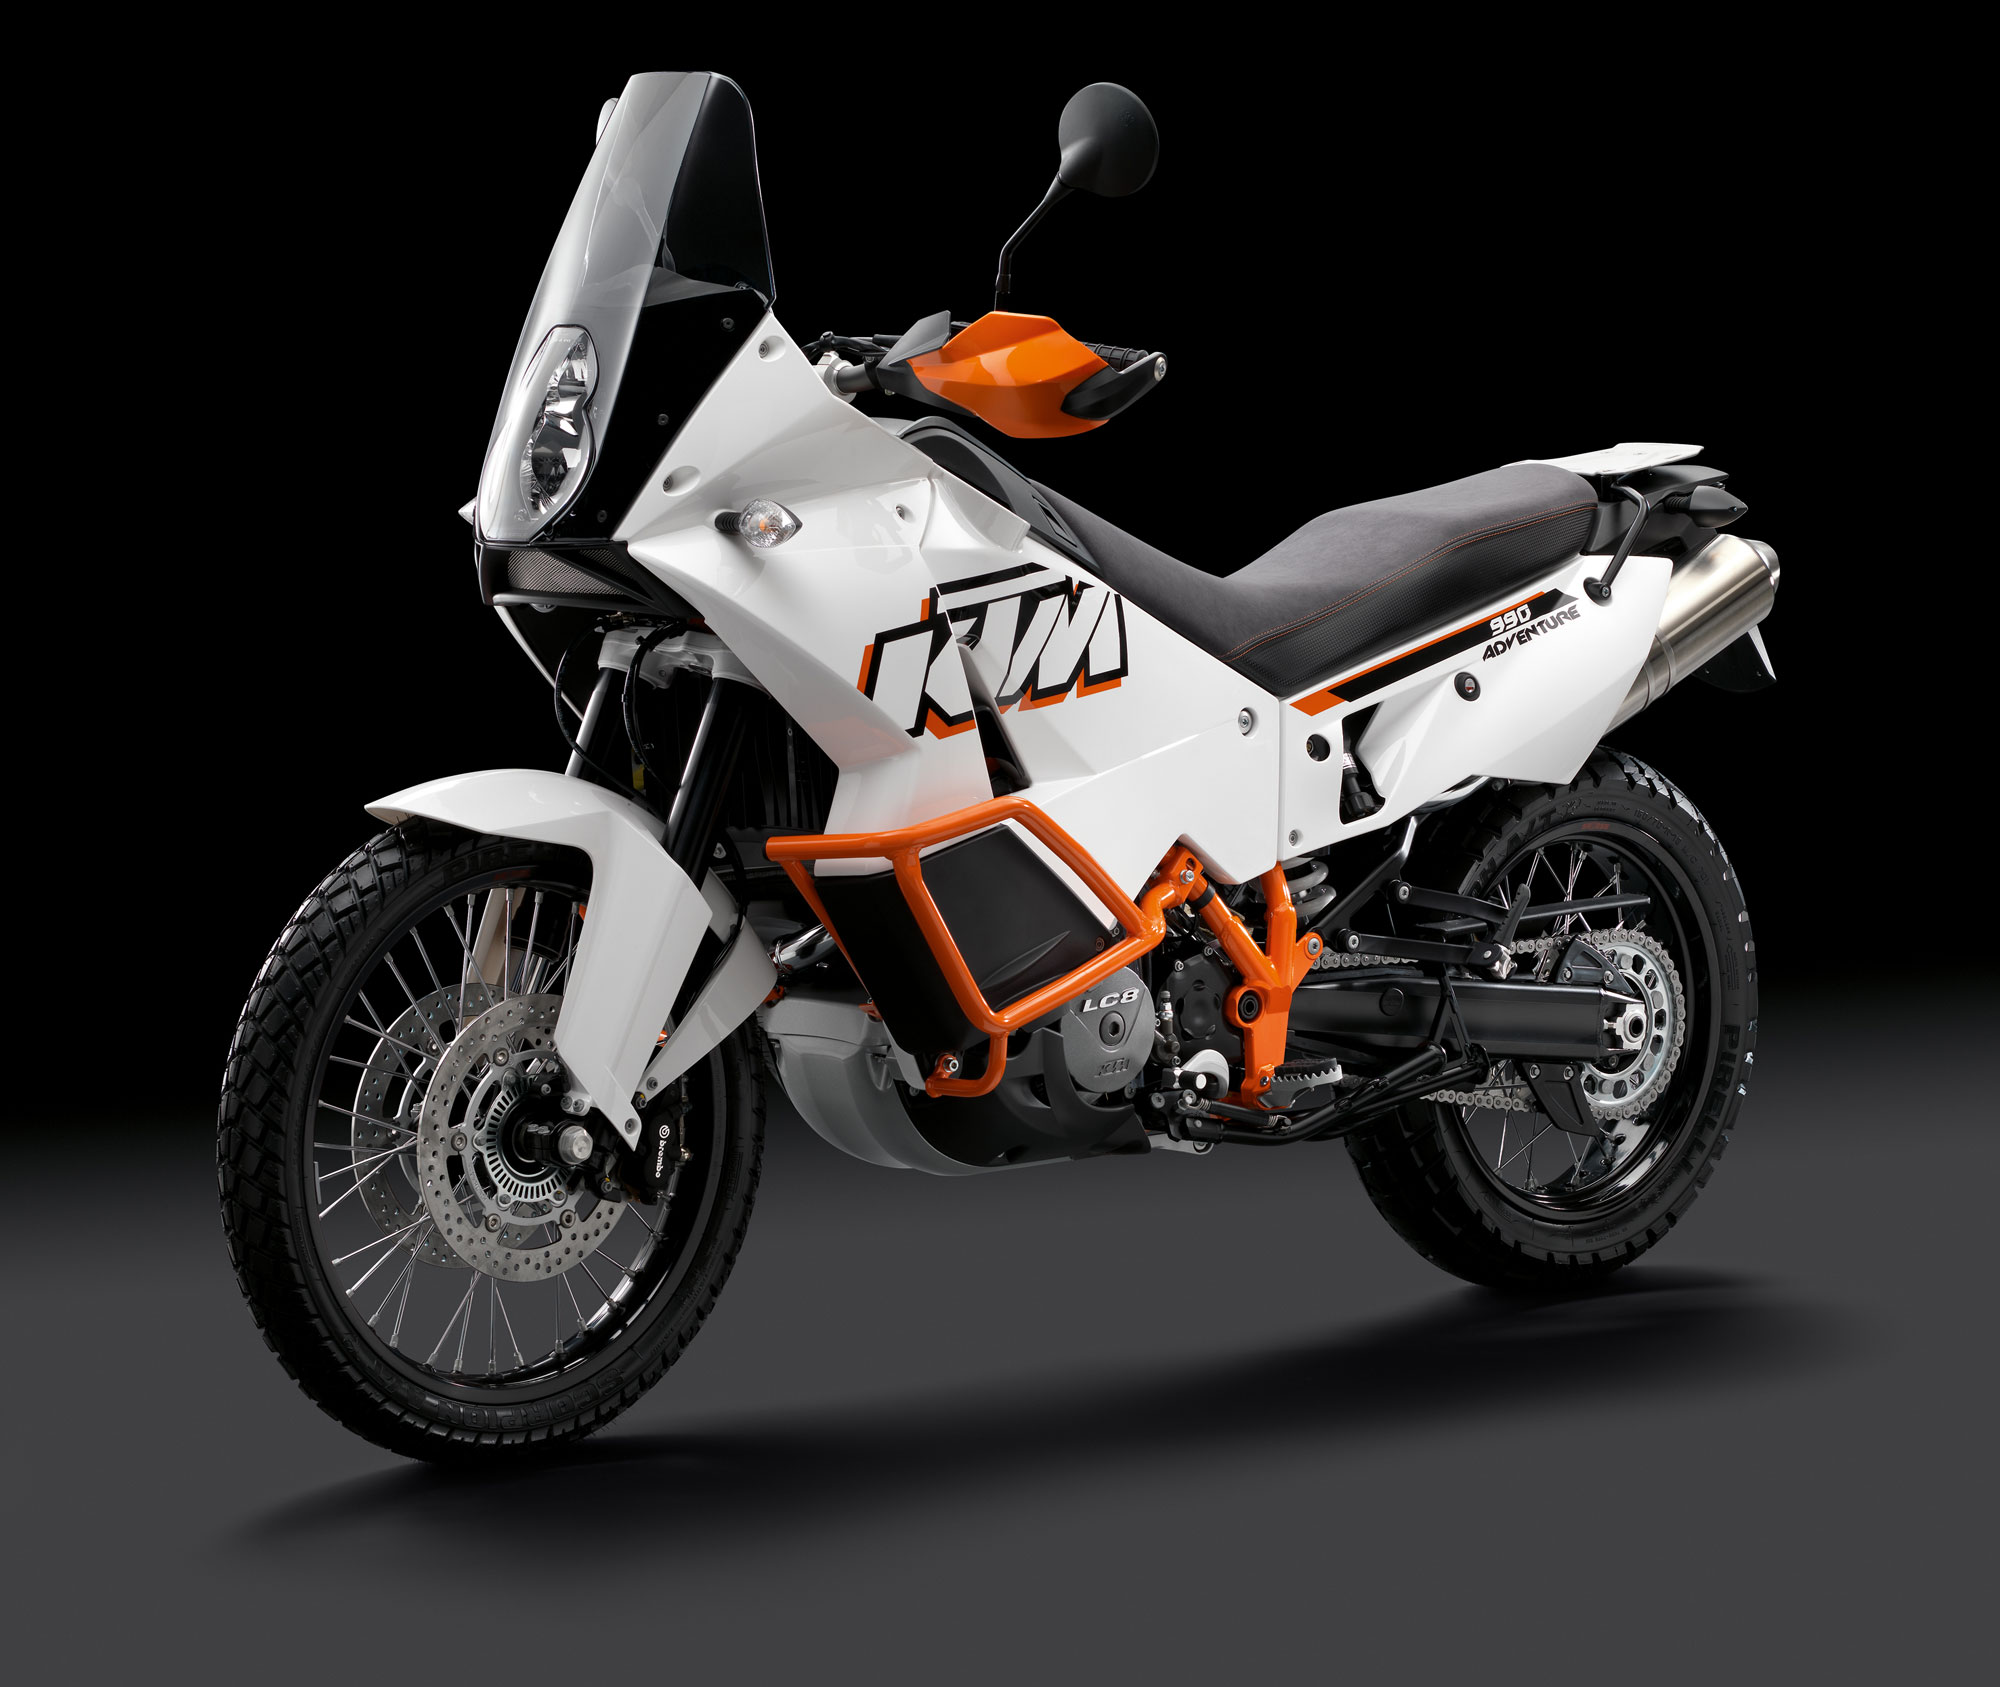 2012 KTM 990 Adventure Review